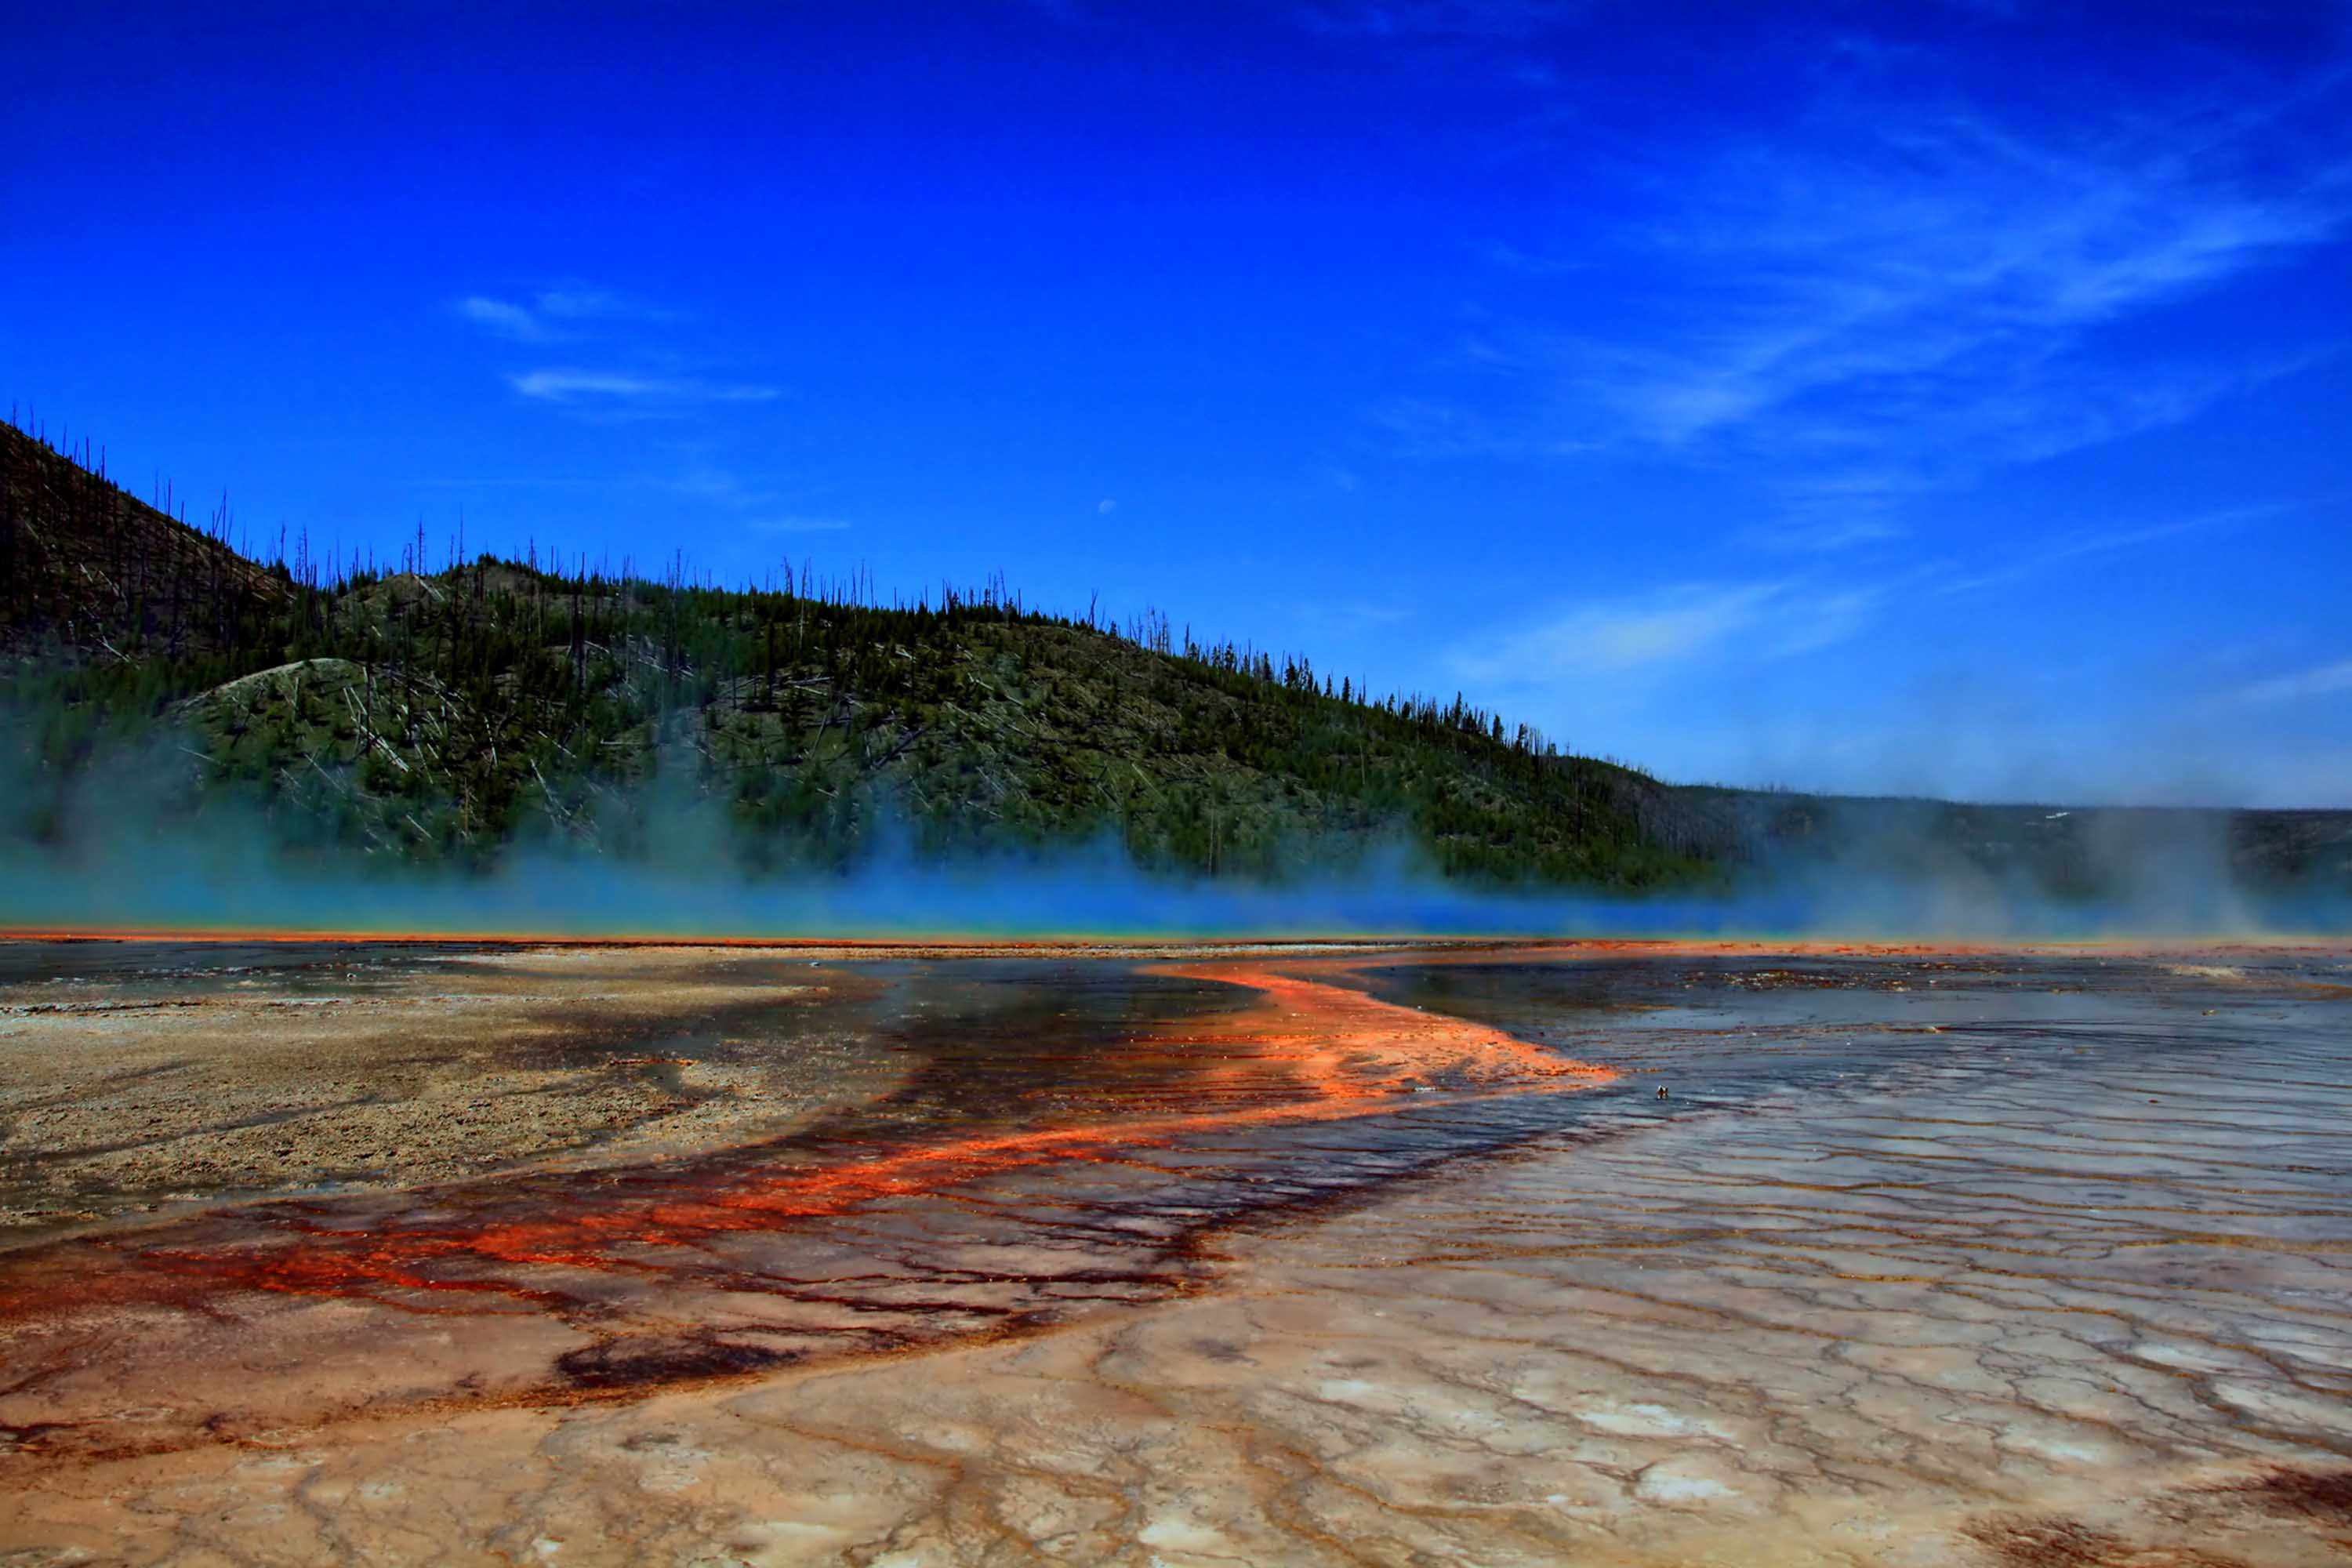 Brilliant orange algae and bacteria by a hot spring